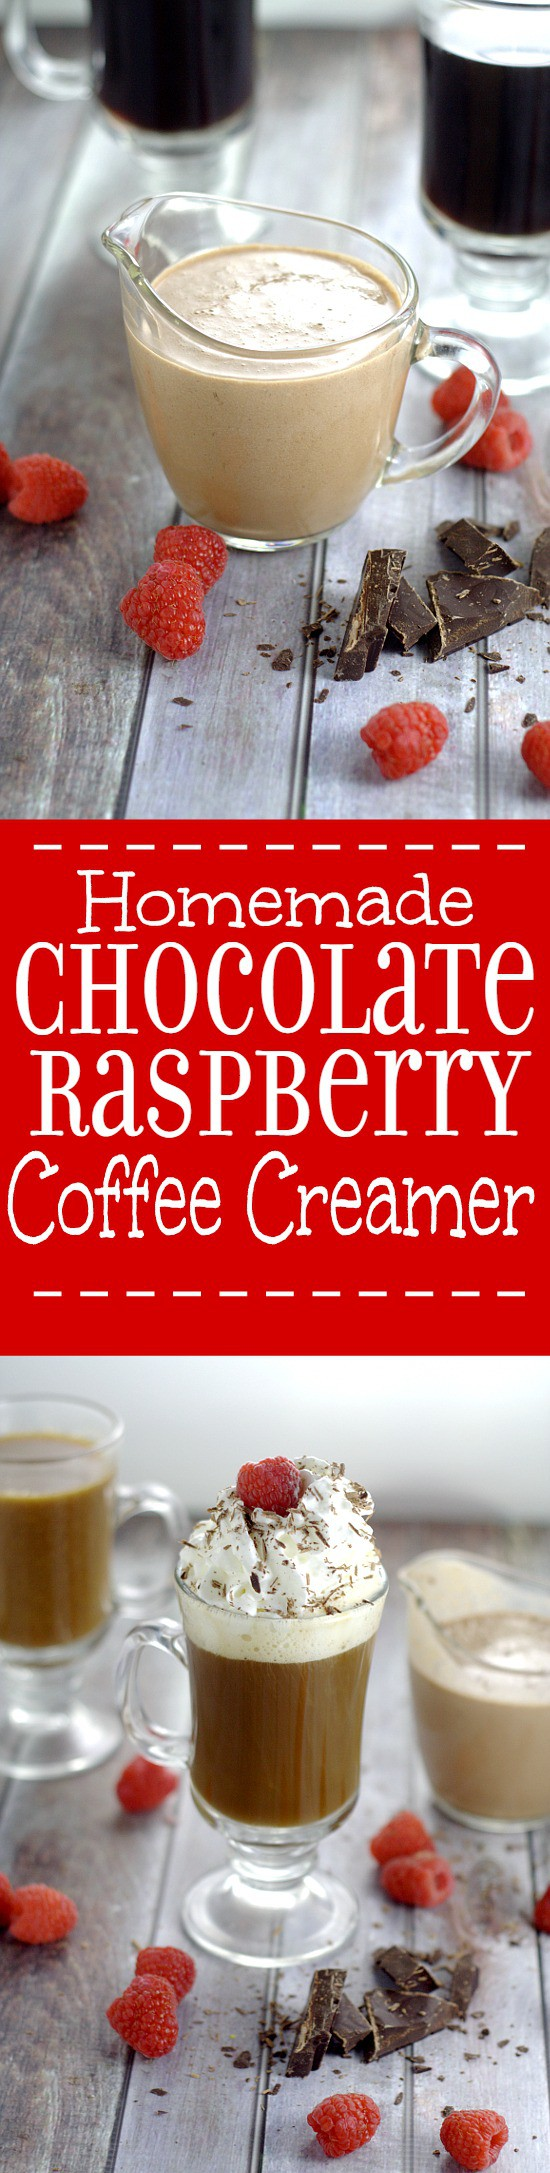 Homemade Chocolate Raspberry Coffee Creamer.Rich, decadent Homemade Chocolate Raspberry Coffee Creamer with smooth, creamy chocolate and a fruity kick of raspberries is sure to transform your coffee into an amazing, indulgent treat. Make some gourmet coffee at home! This would be delicious for Valentine's Day too!